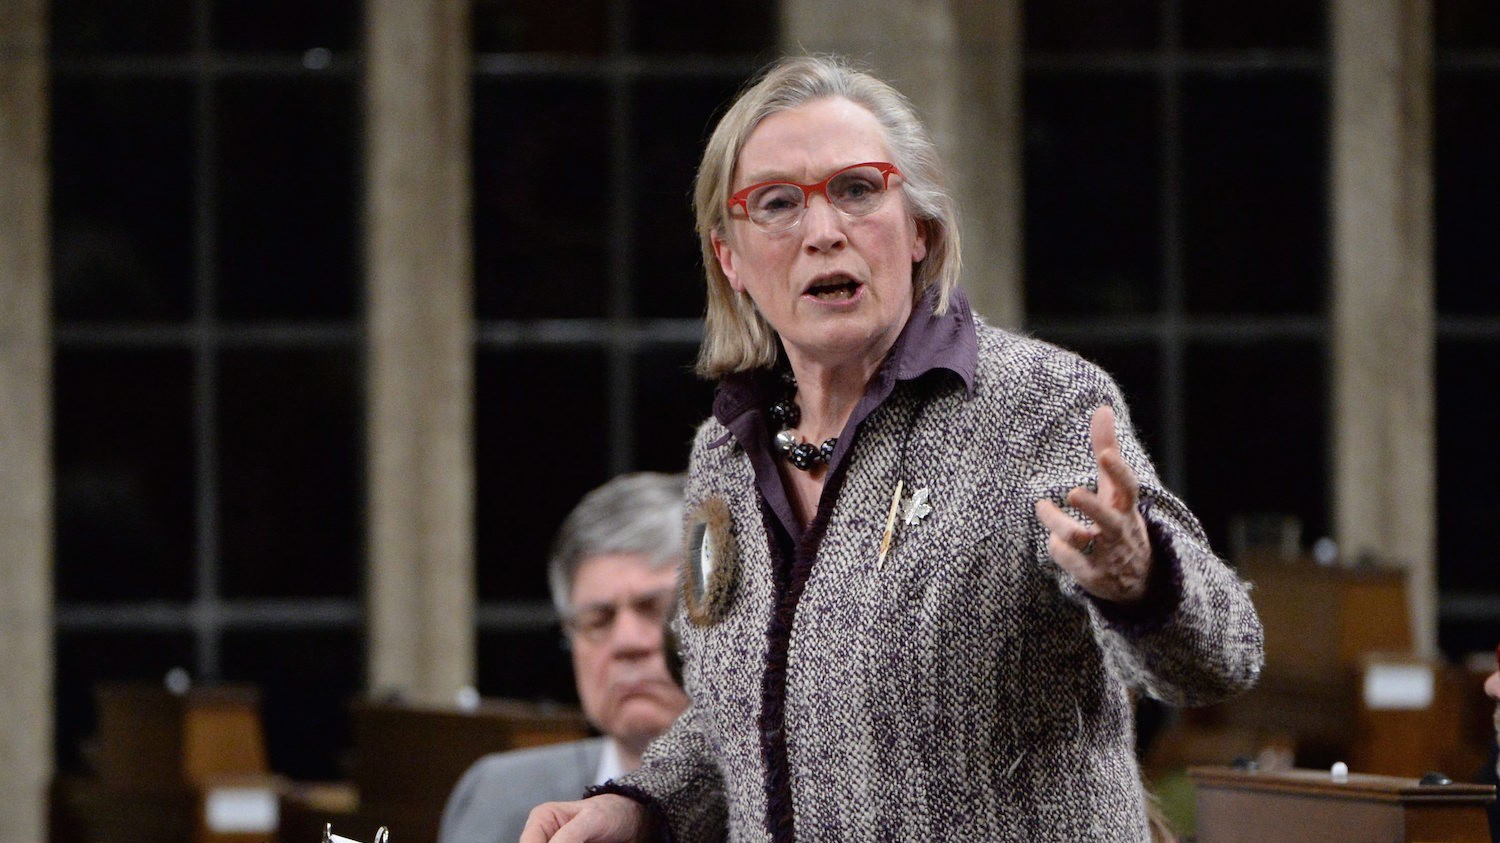 Canadian Politicians Debate Until Midnight the 'Staggering' Indigenous Suicide Crisis